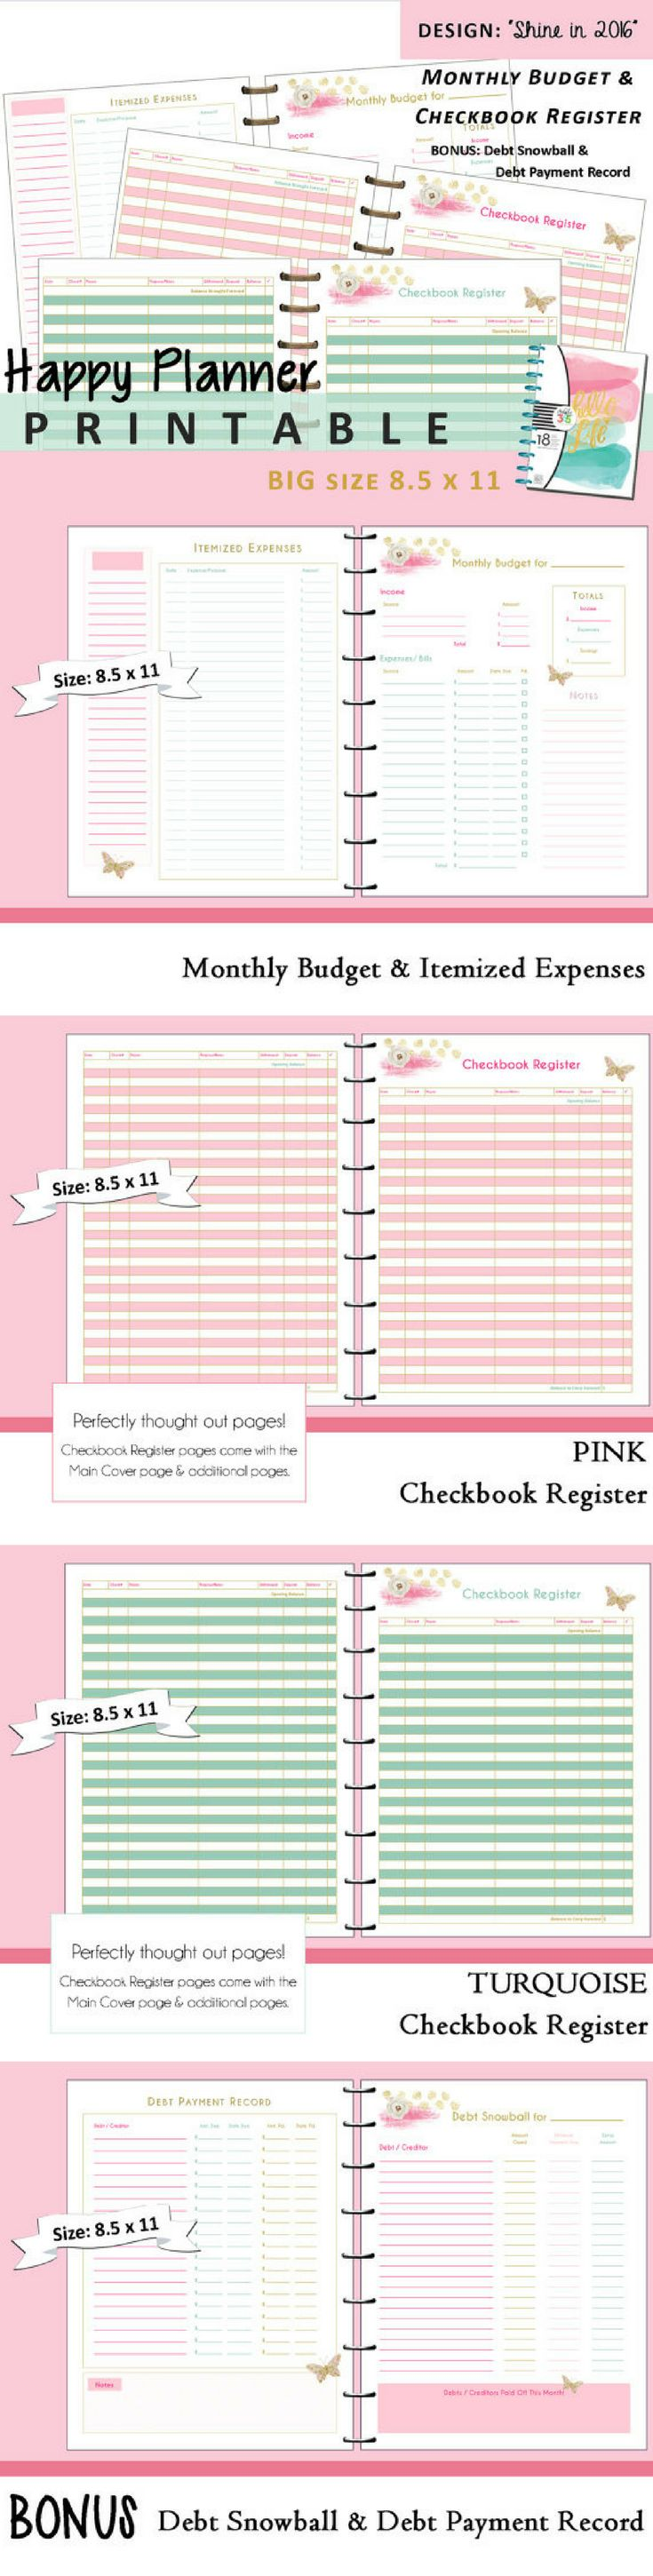 PRINTABLE Monthly Budget & Checkbook Register Planner #budgeting #saving #organization #frugal #finance #moneysense #affiliate